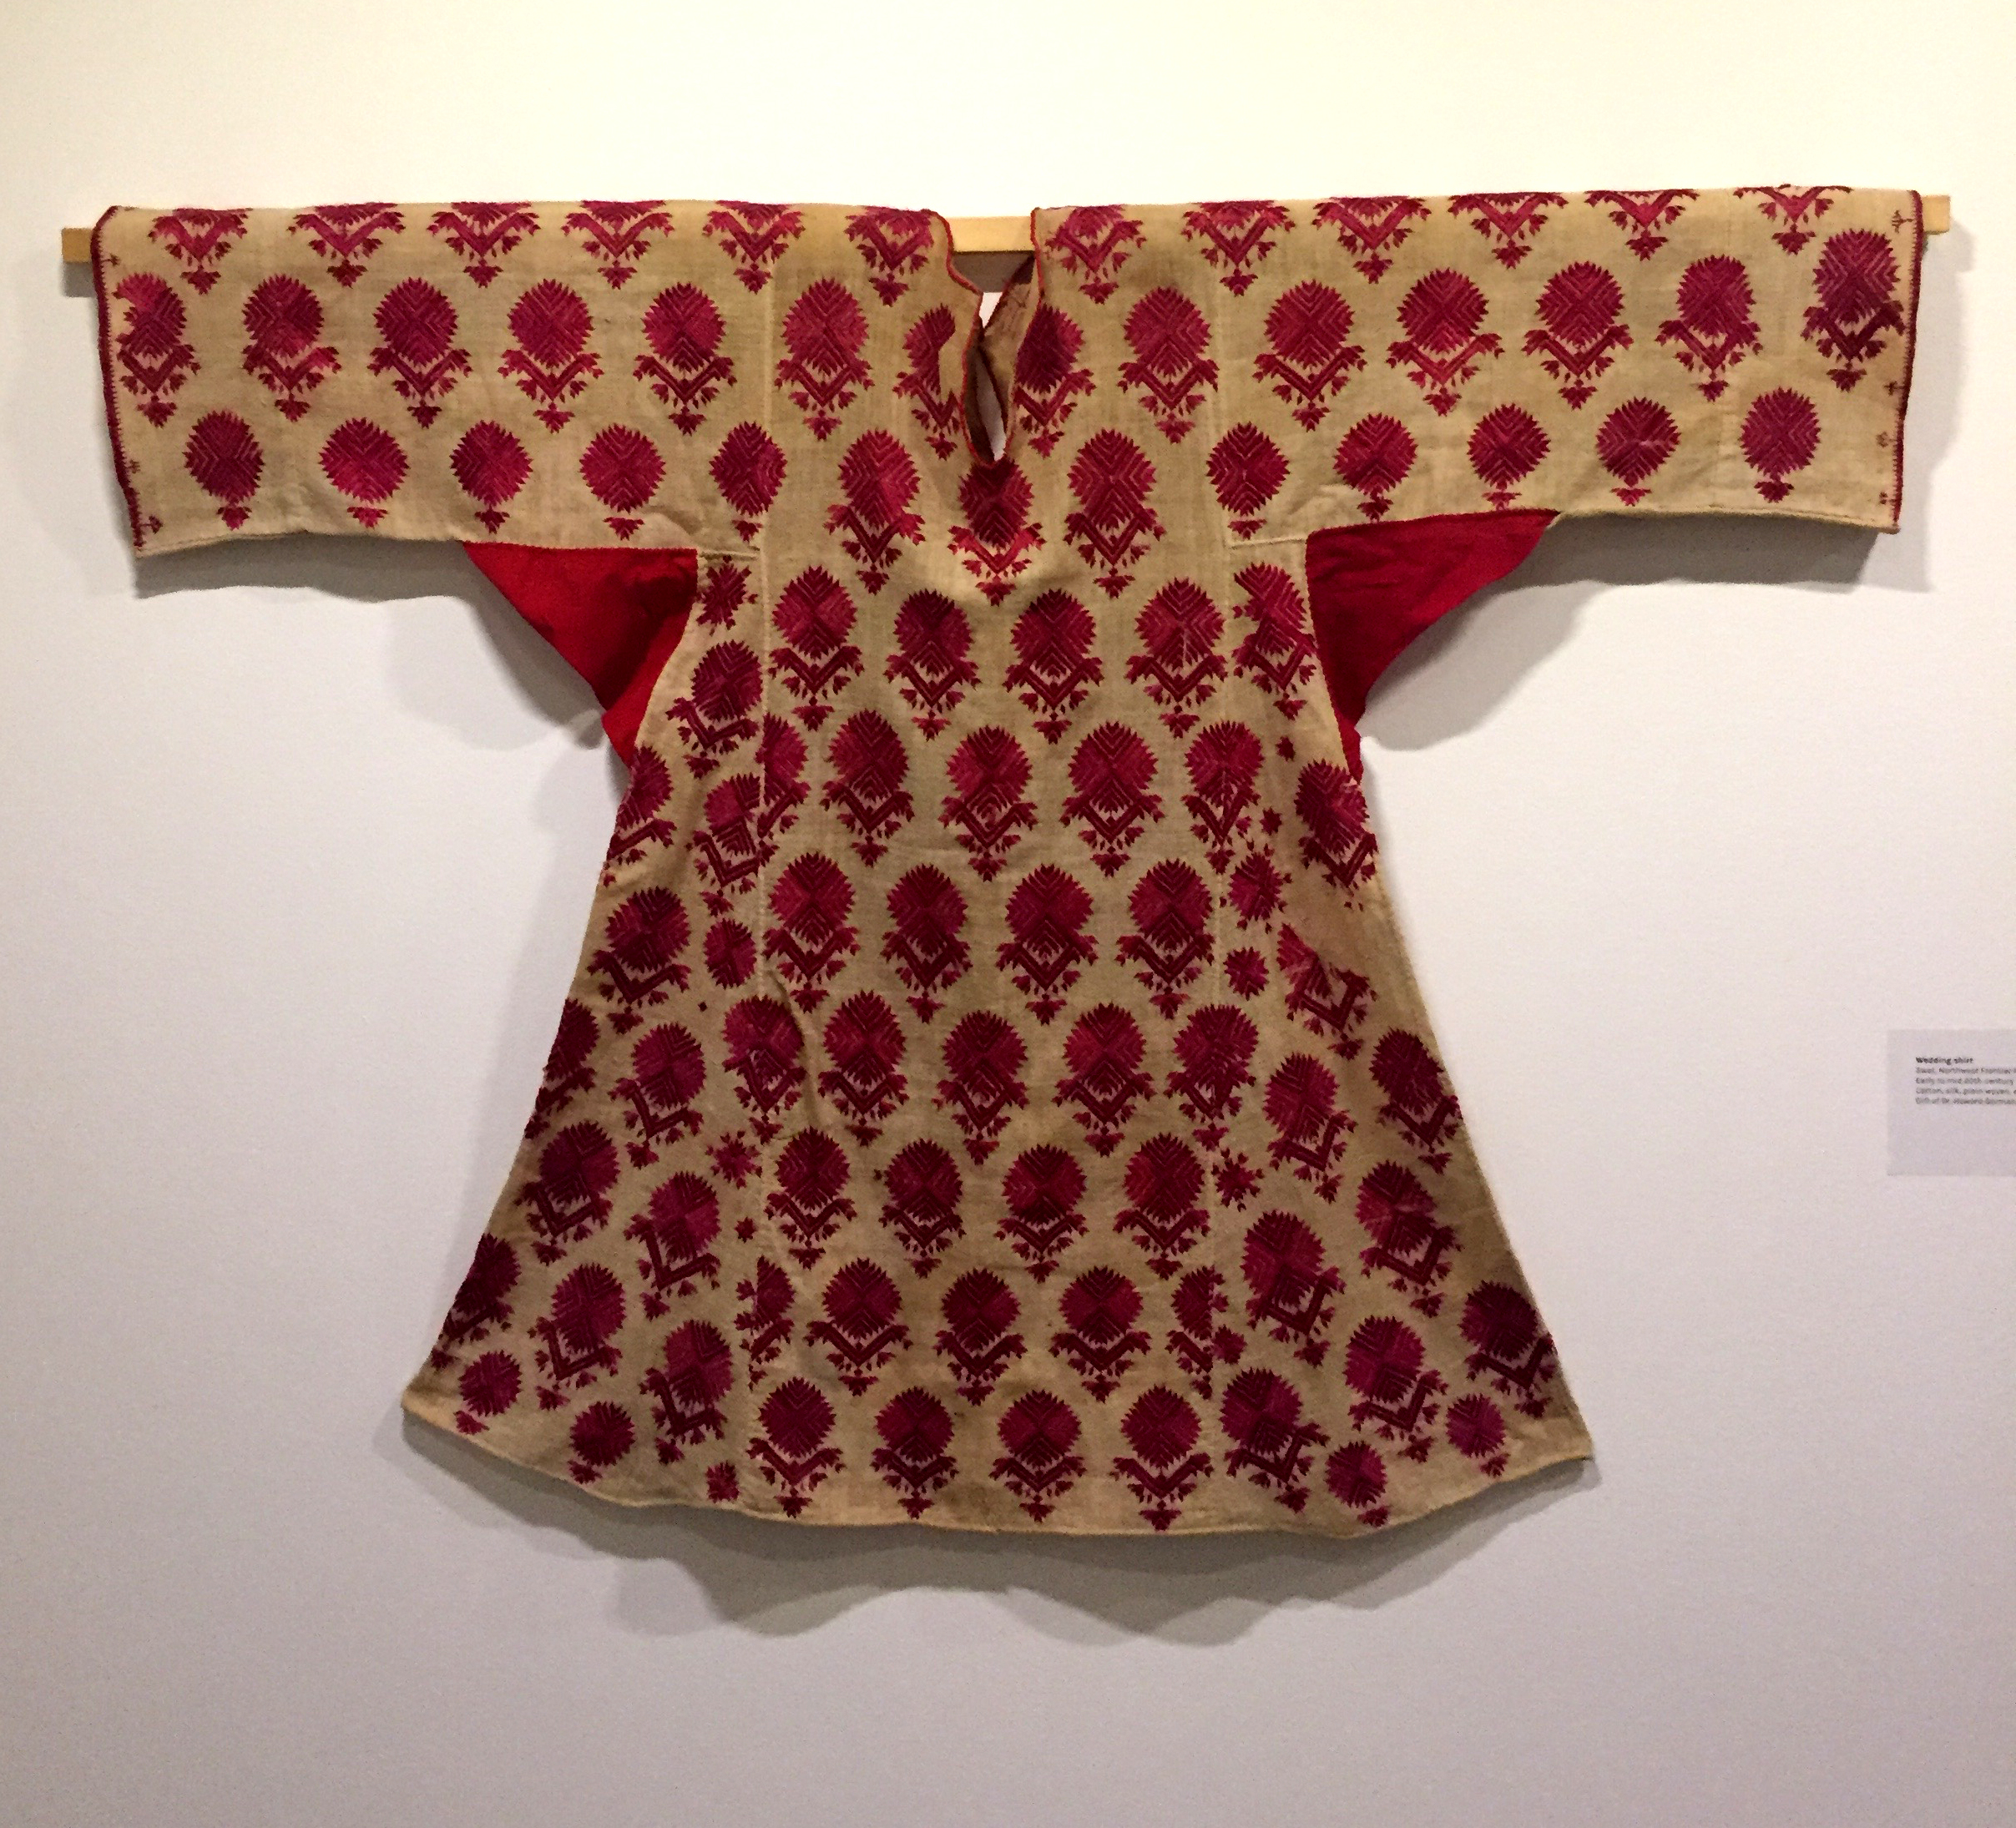 Wedding Shirt, Swat, Northwest Frontier Province, Pakistan, early to mid 20th century.